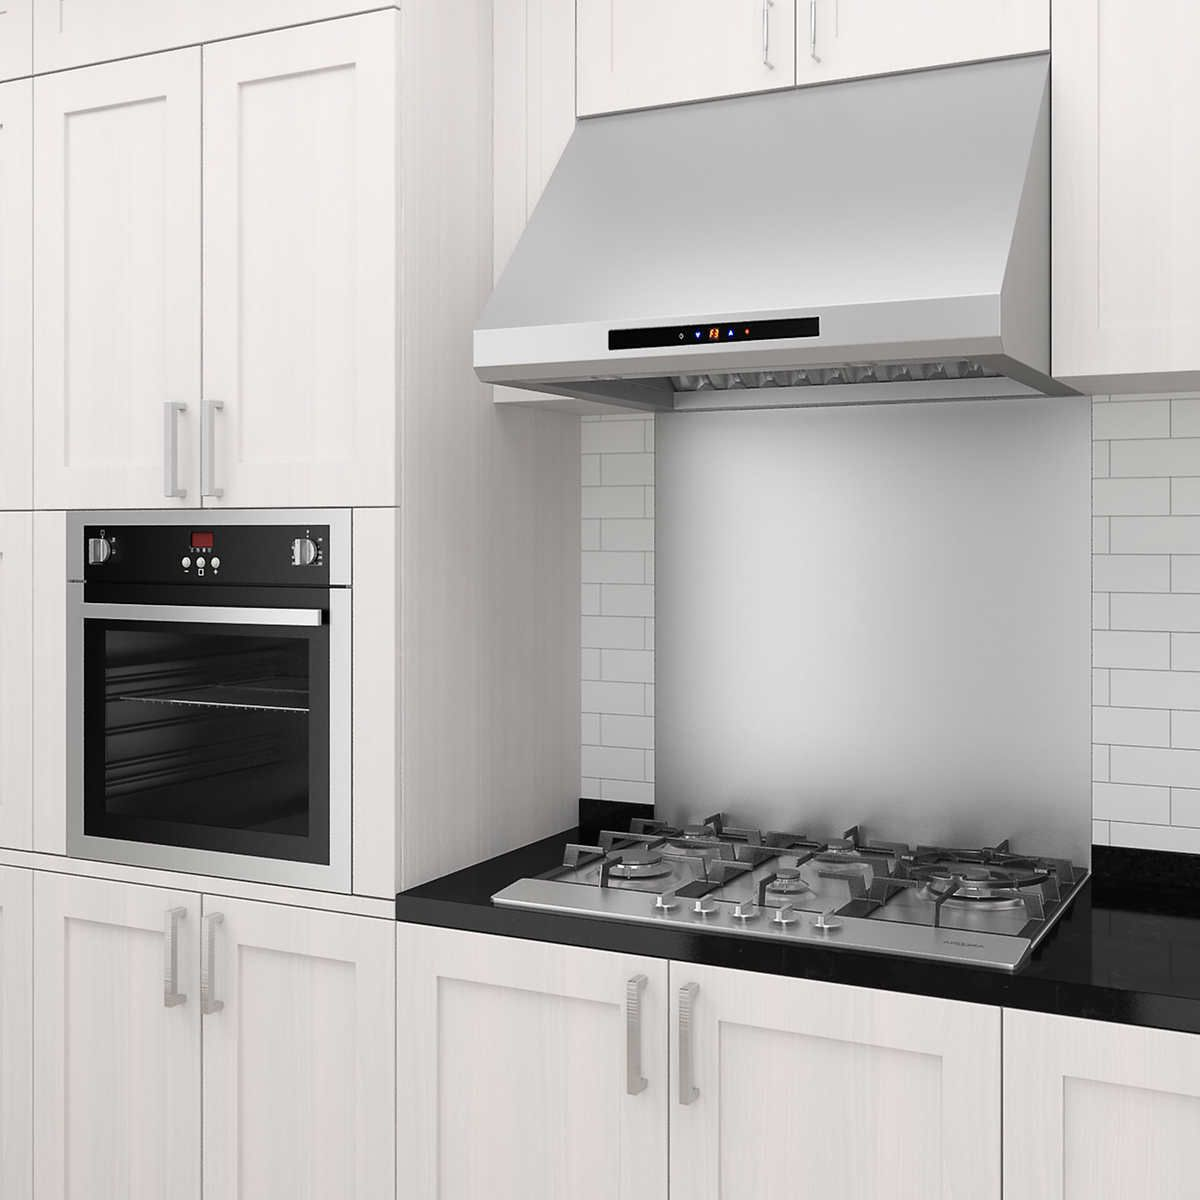 Ancona Pro Series Under Cabinet 30 Or 36 Range Hood With 850cfm Twin Motors In Stainless Steel Kitchen Range Hood Range Hood Kitchen Hood Design